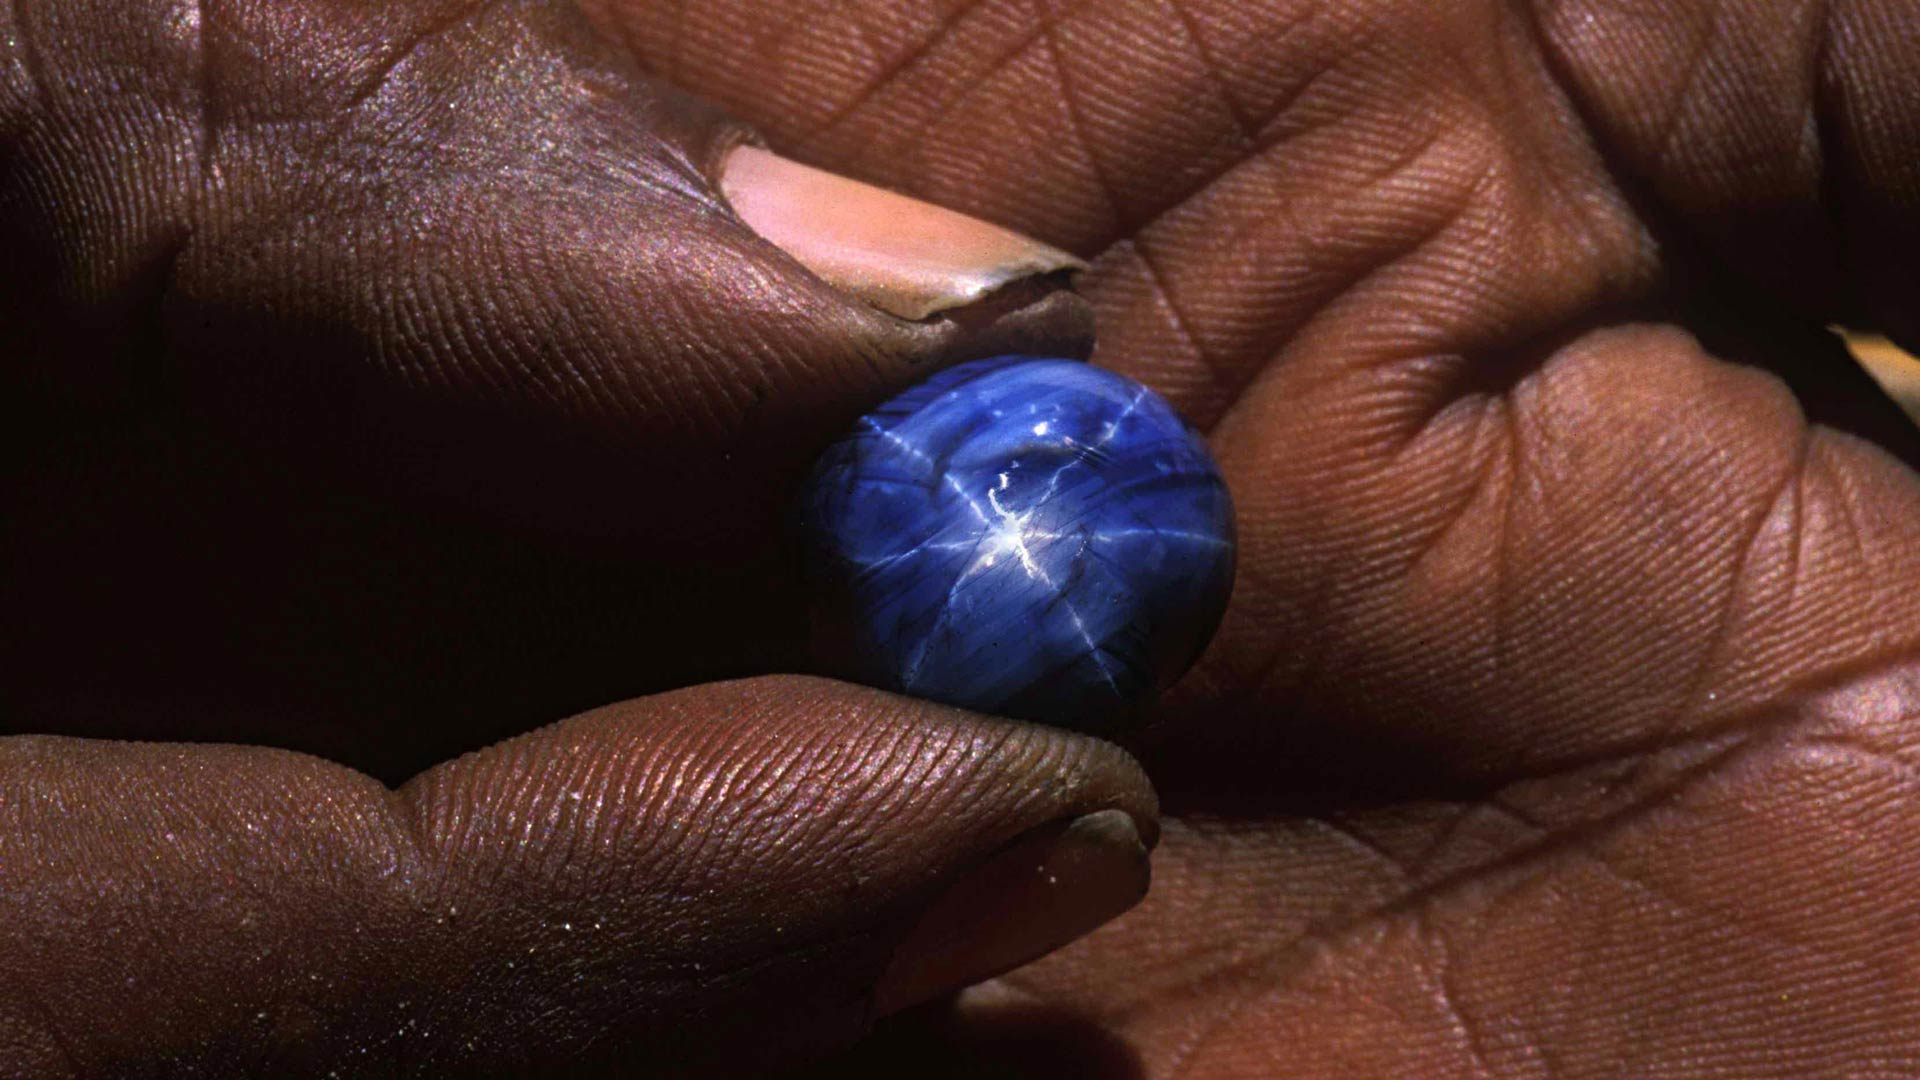 Sapphire in the palm of the hand